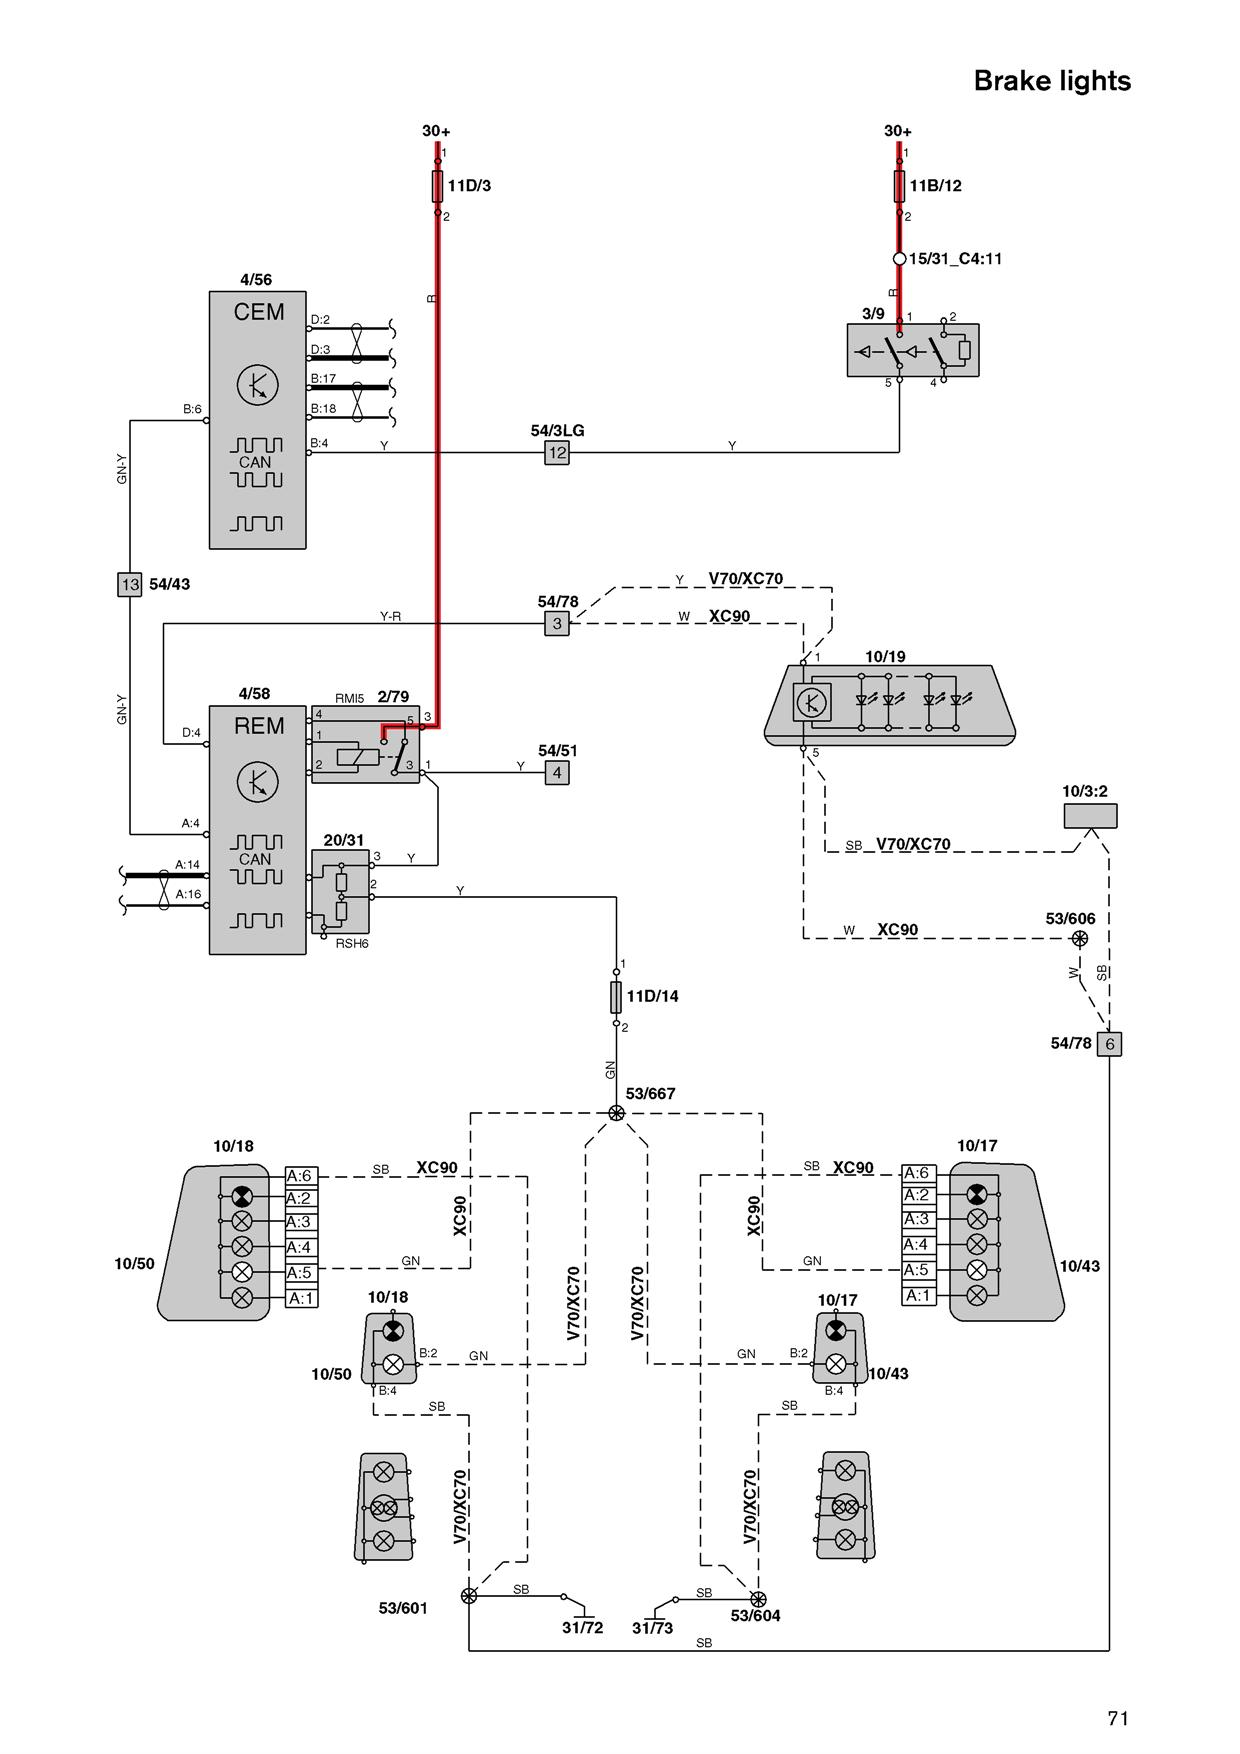 Fuse box diagram for s on volvo wiring